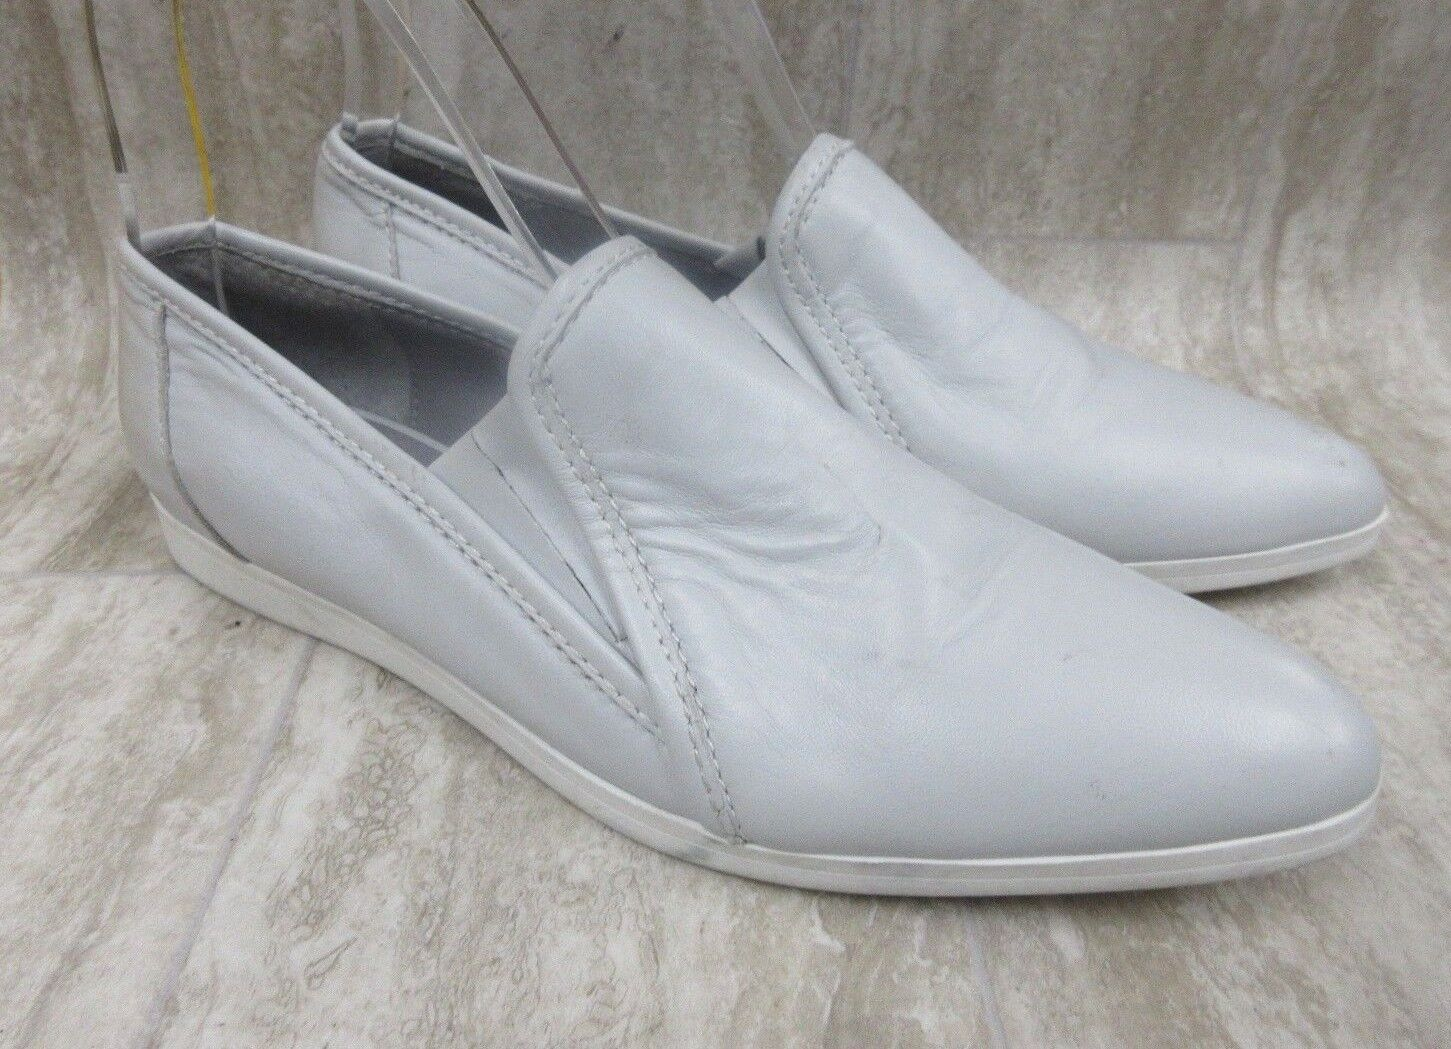 Trouve Leather 'Evans' Leather Trouve Slip-On Flat in Gray Women's Size: 7 M 78fda7